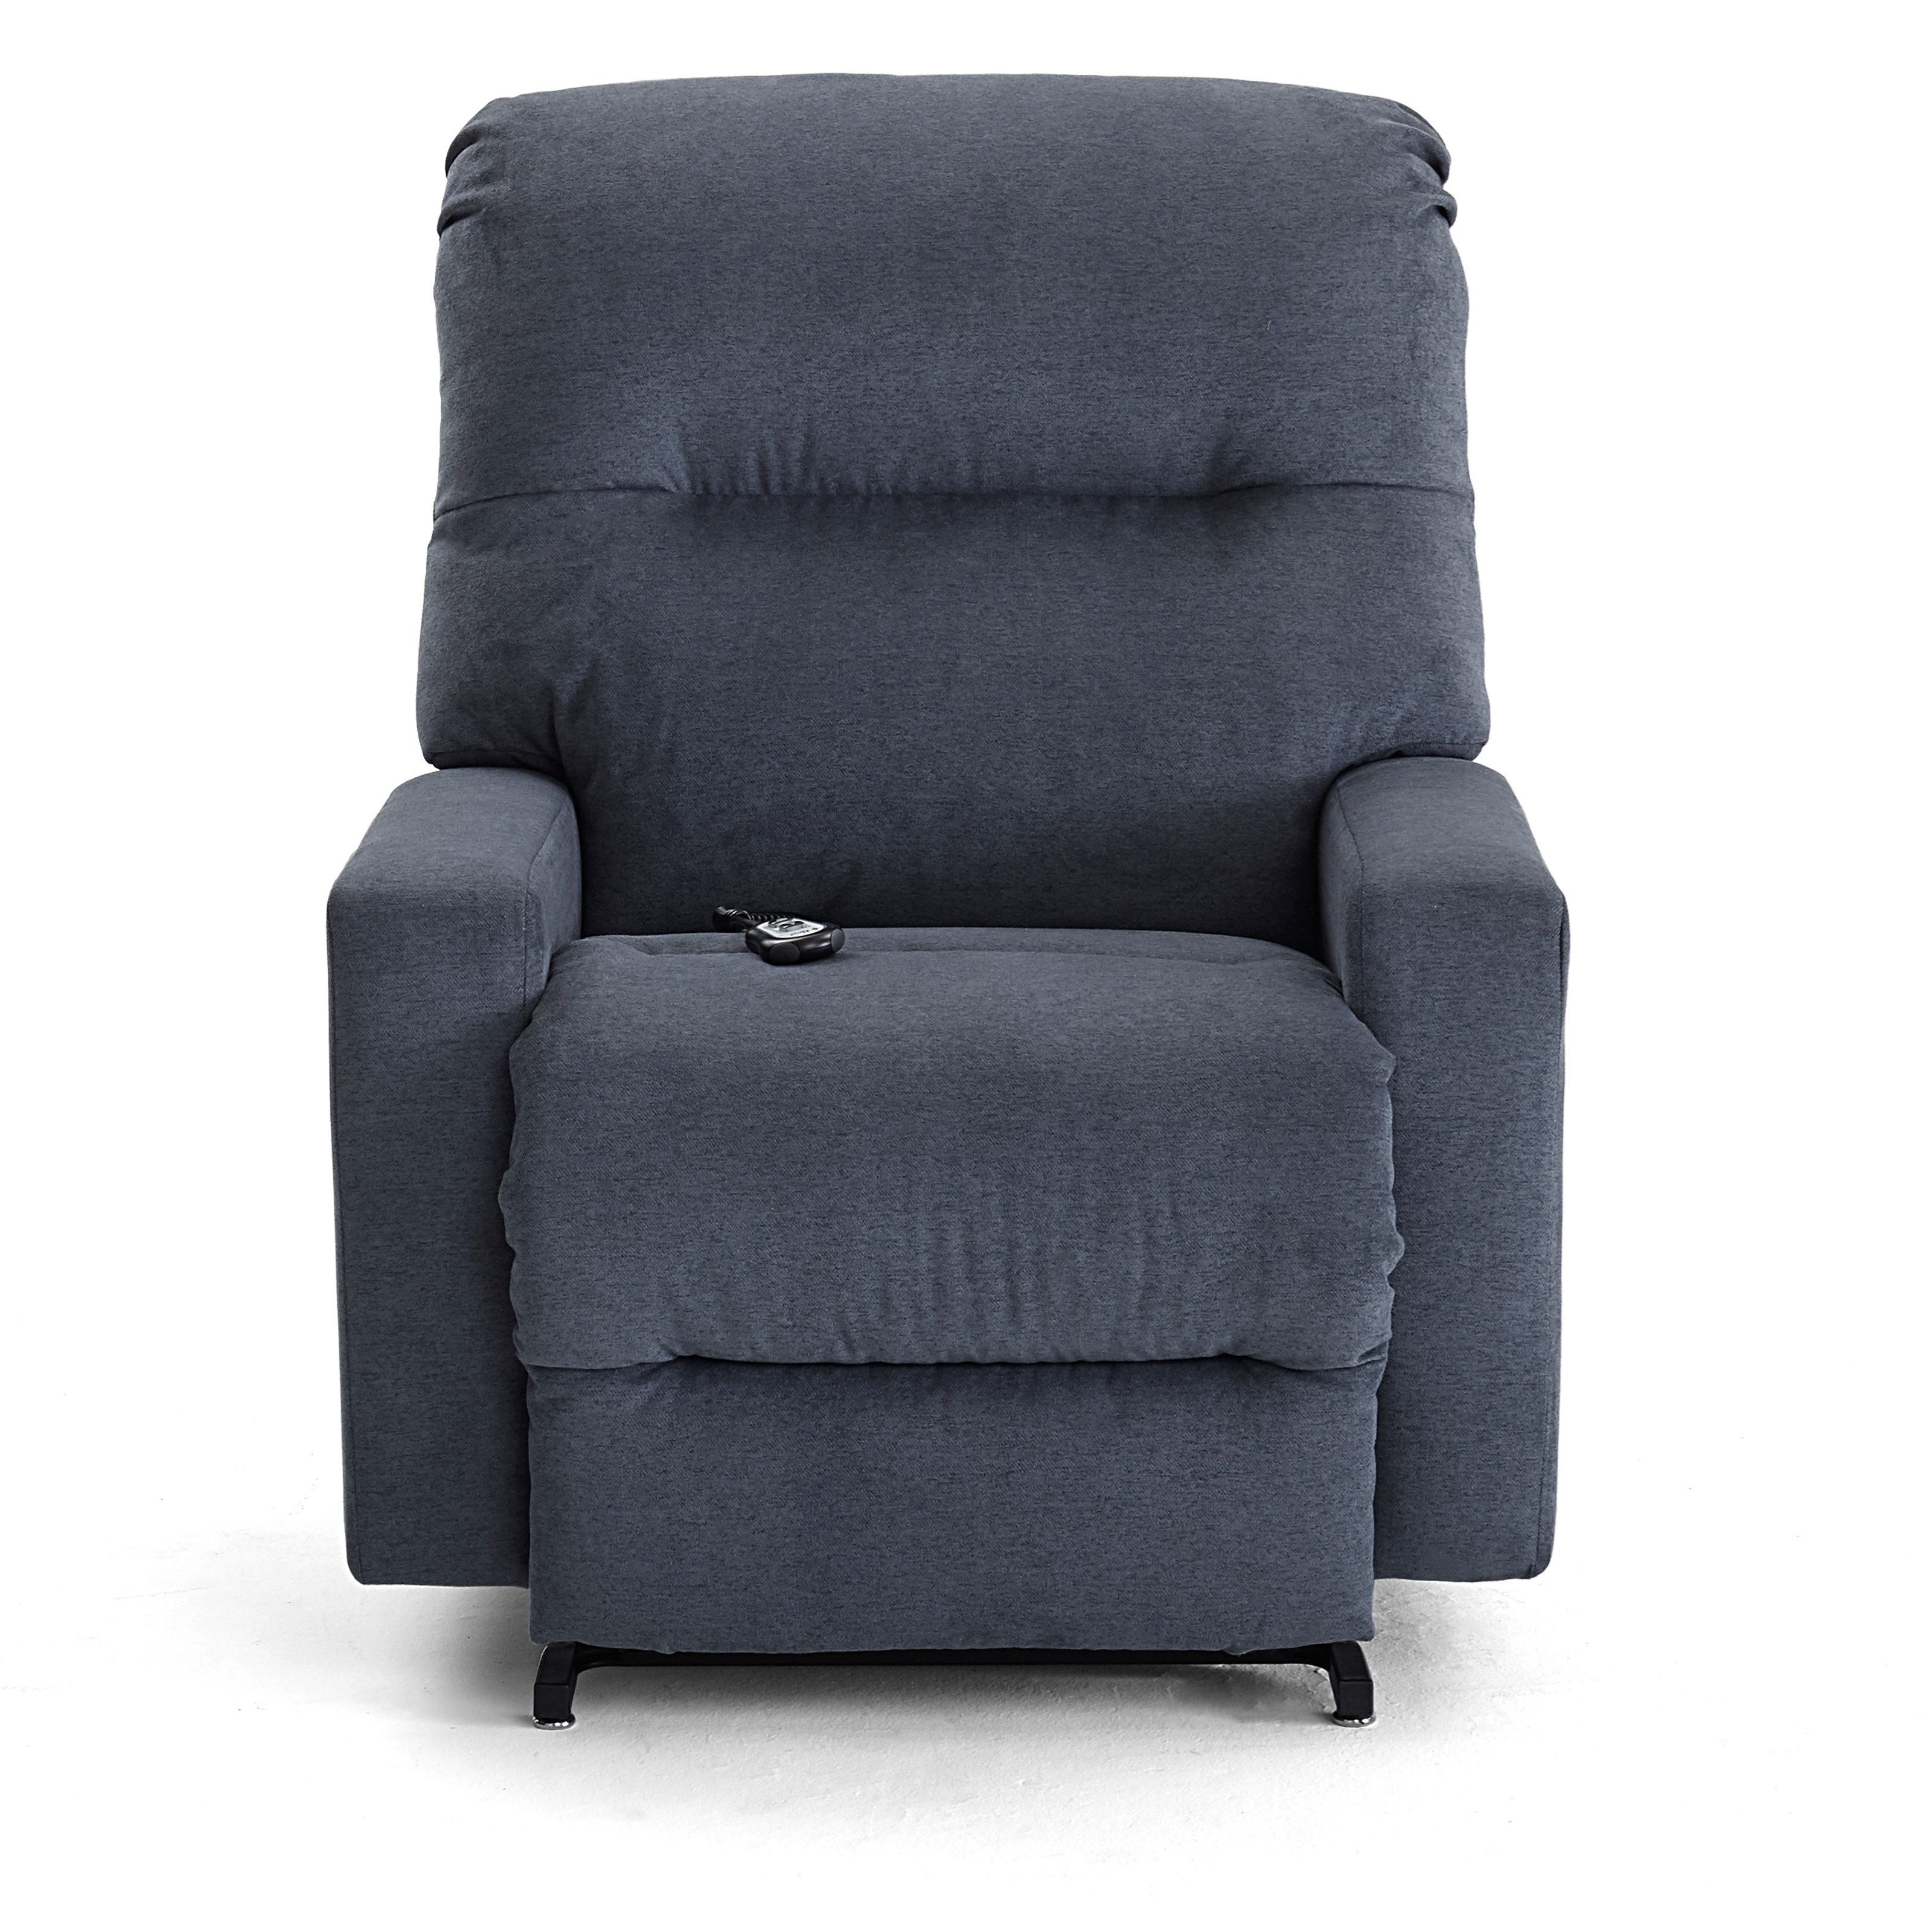 Kenley Power Lift Recliner by Best Home Furnishings at Baer's Furniture